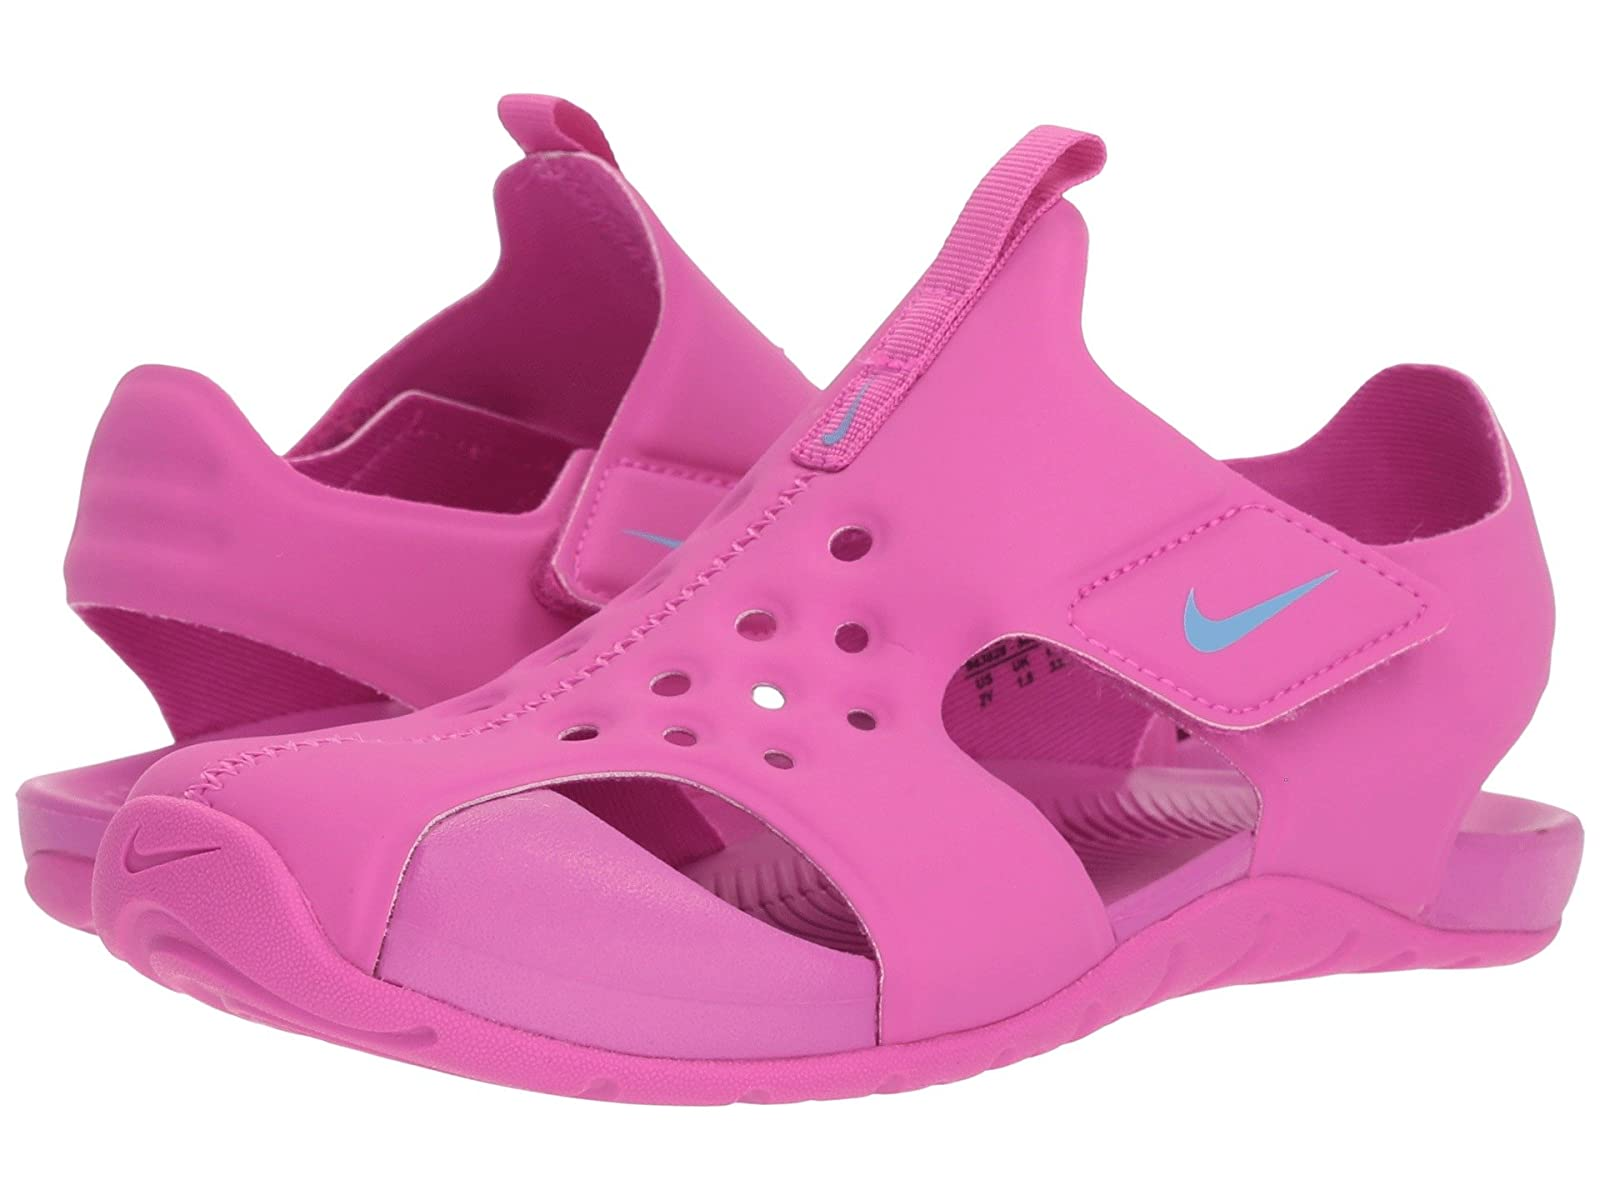 Nike Kids Sunray Protect 2 (Little Kid/Big Kid)Atmospheric grades have affordable shoes